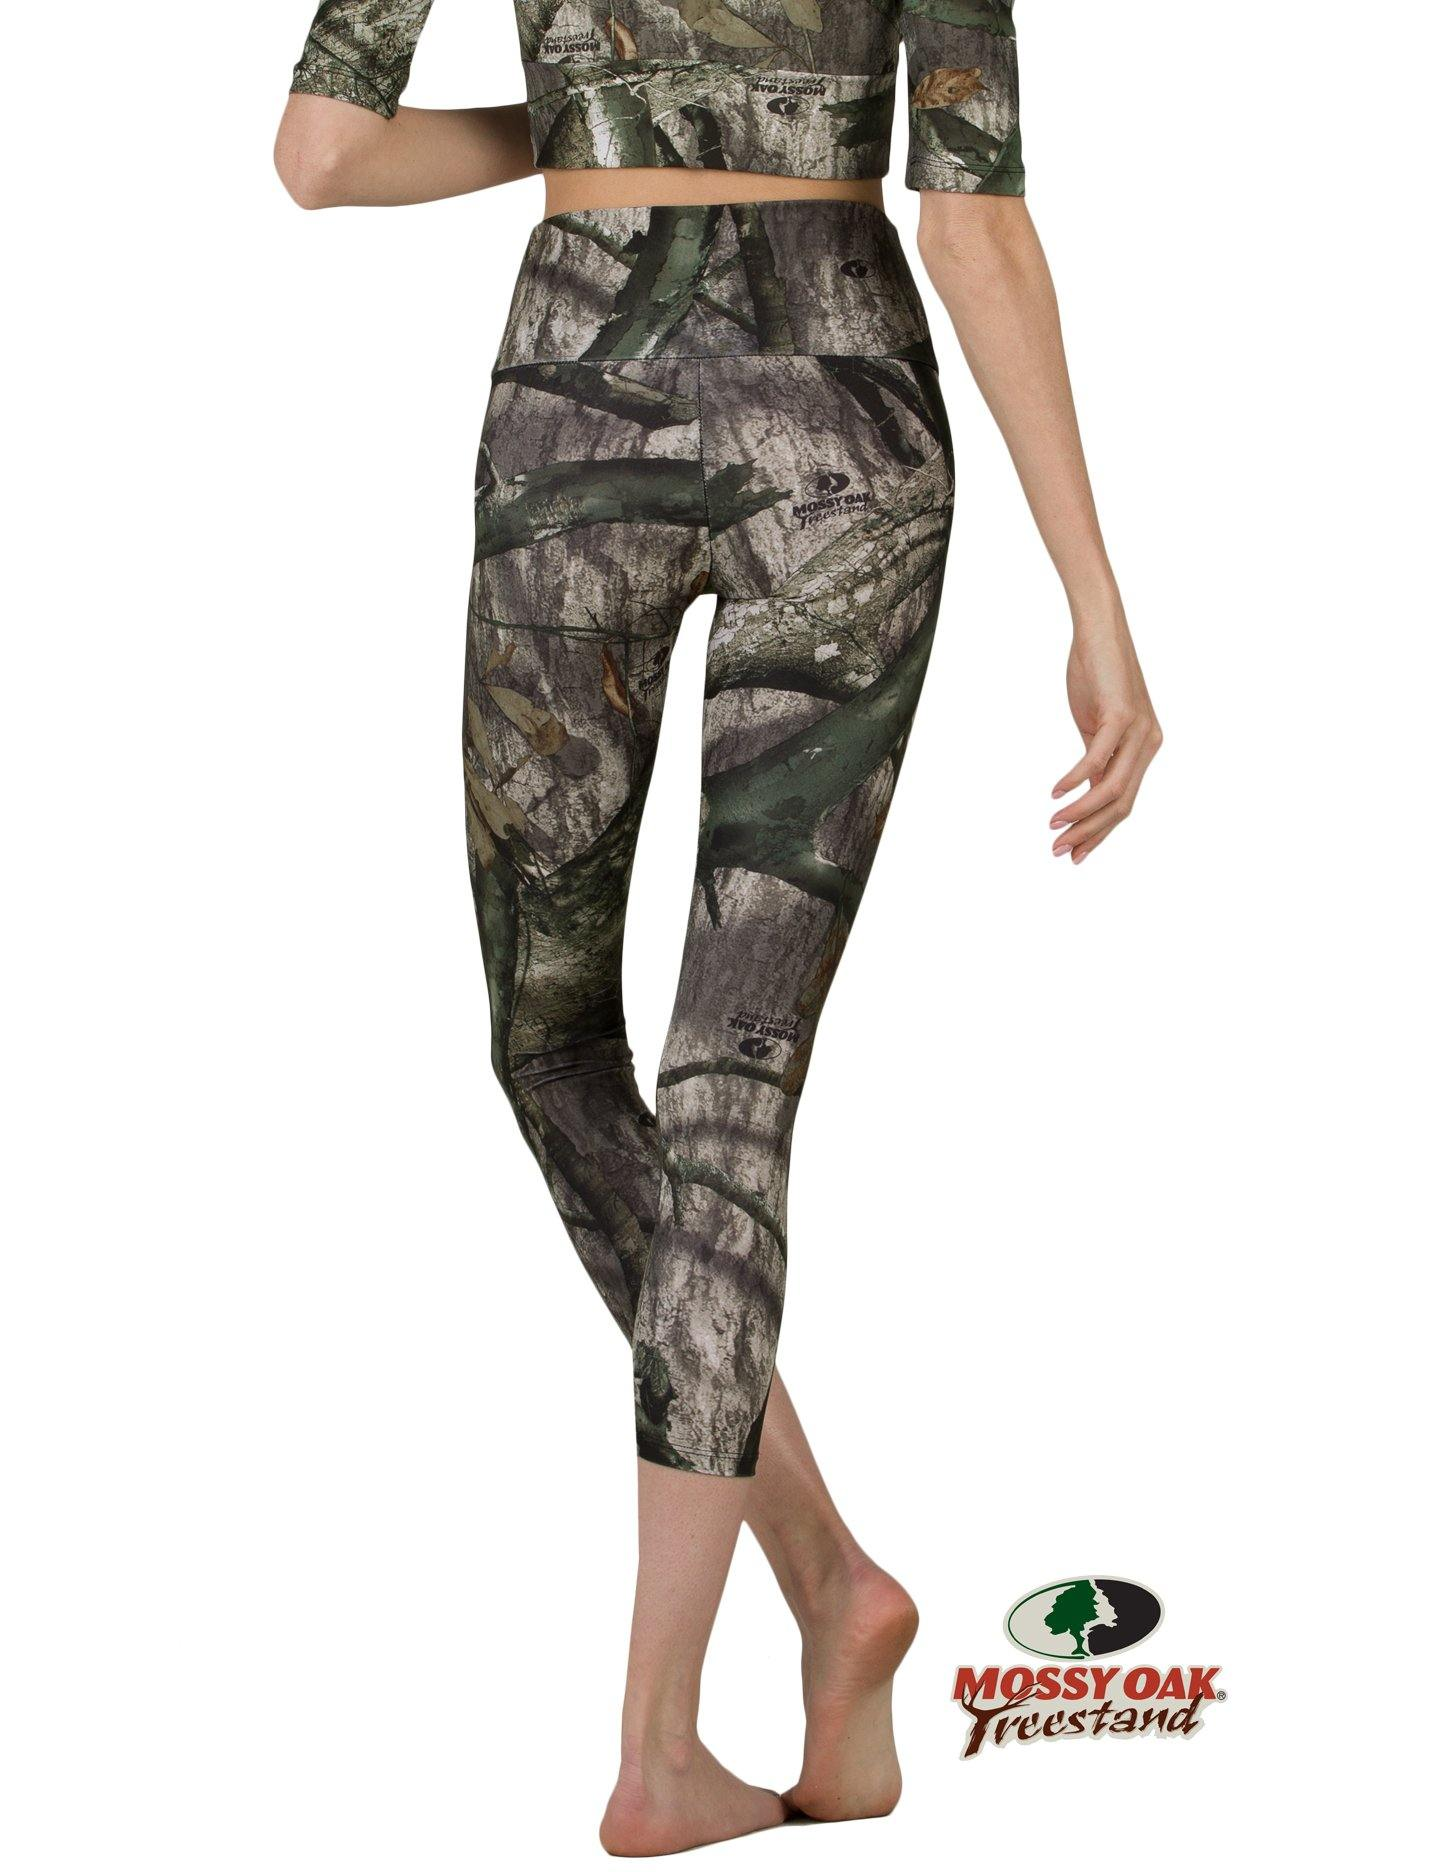 Apsara Leggings High Waist Cropped, Mossy Oak Treestand